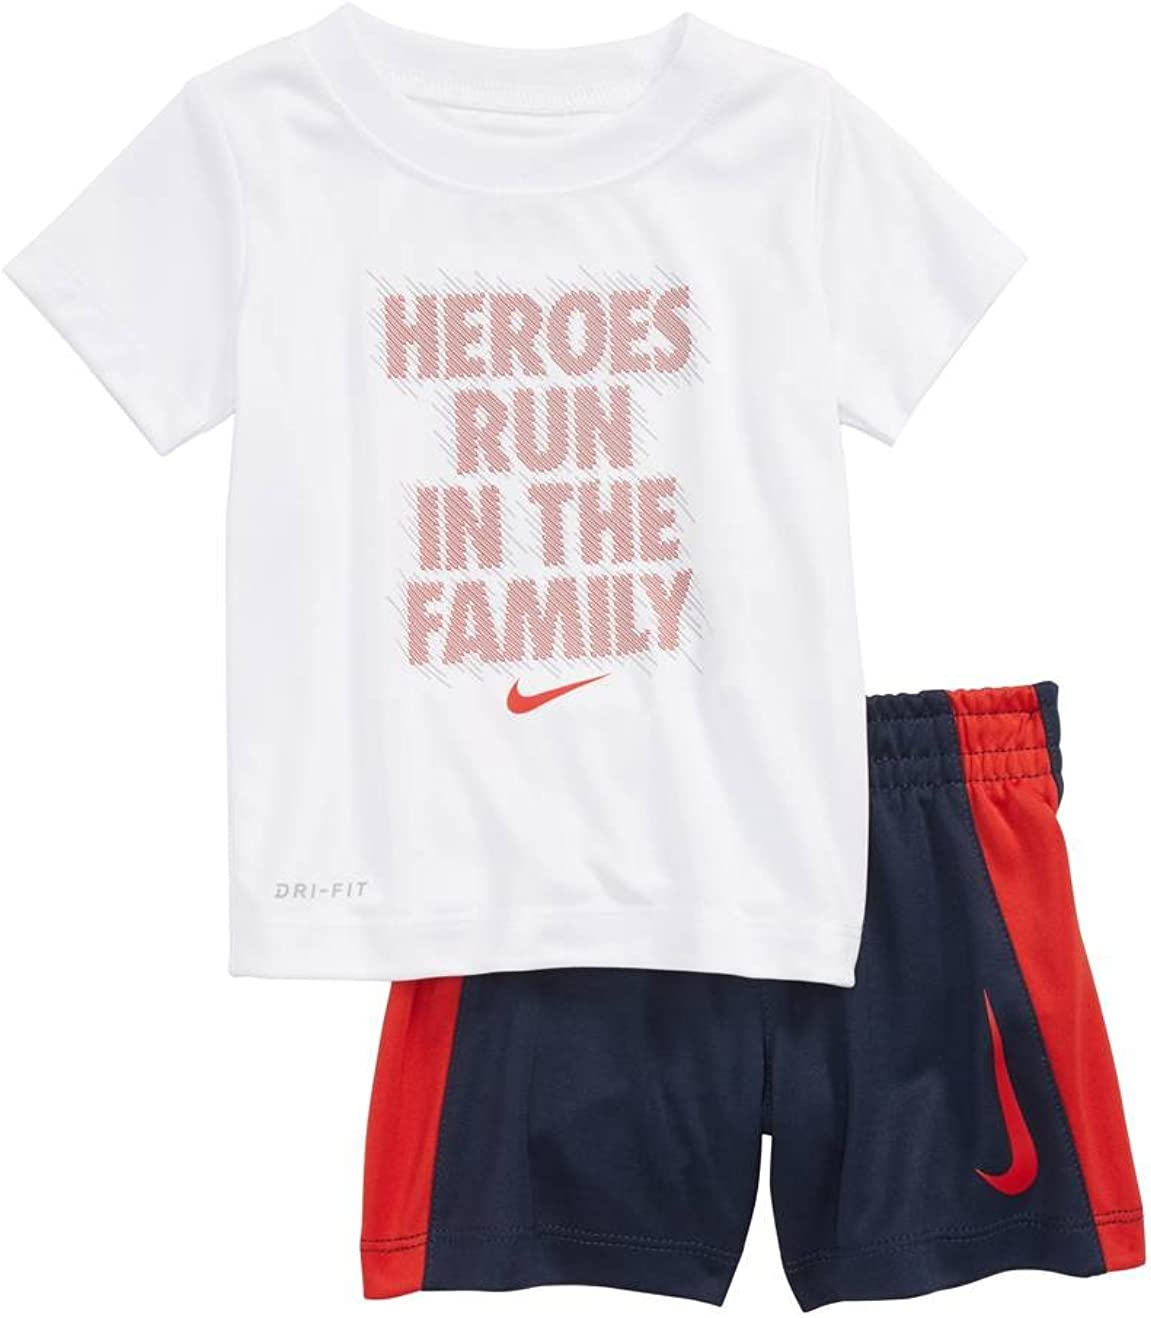 Nike Toddler Boys' Dri Fit Short 2 Indianapolis Mall wholesale Sleeve Piec and T-Shirt